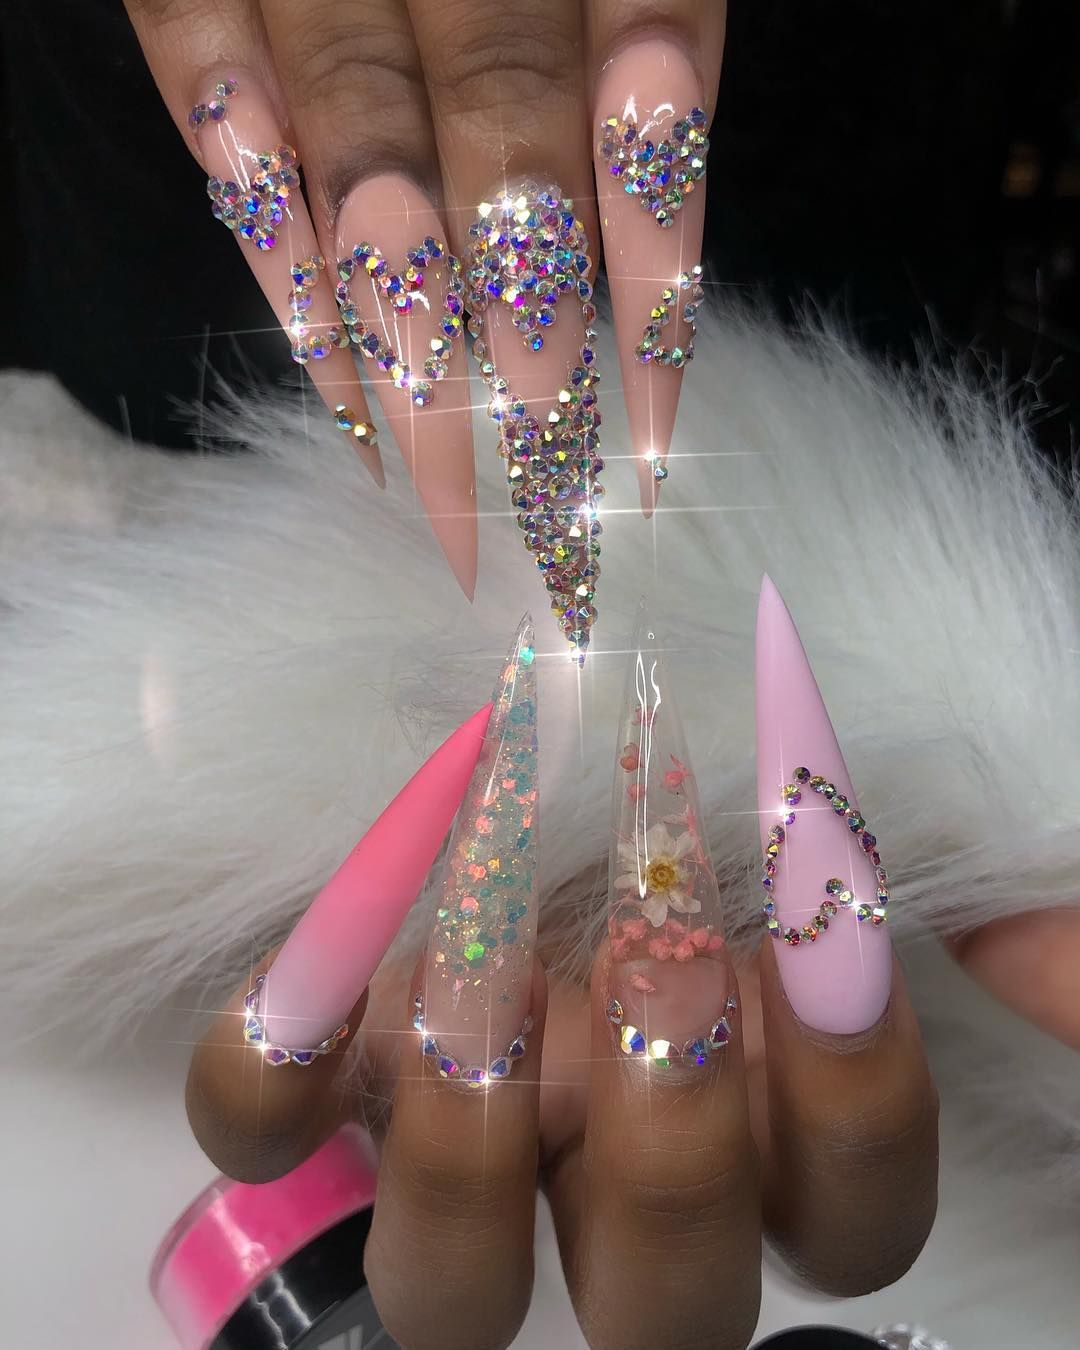 Queenofnails On Instagram Just Whipped These Up On My Girl Glokashy I Bet Sh Cute Acrylic Nail Designs Cute Acrylic Nails Acrylic Nail Designs